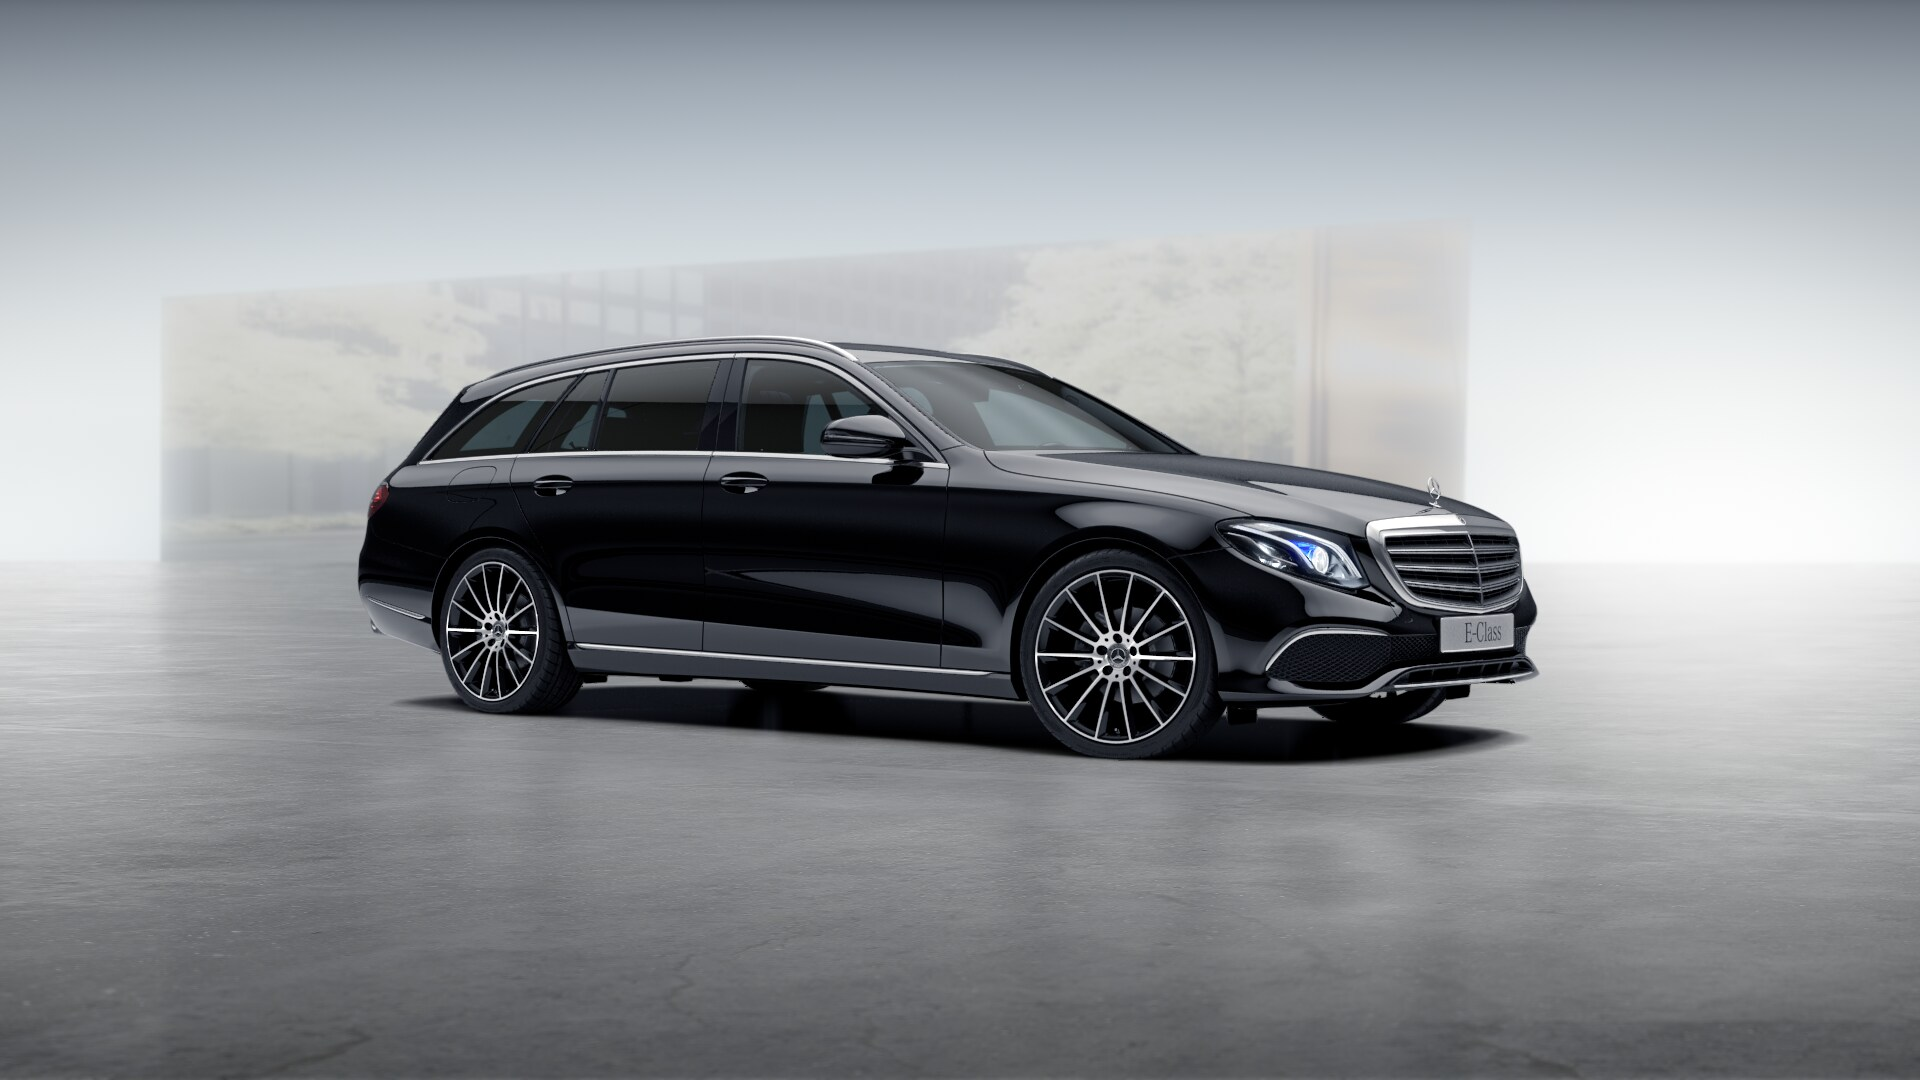 Mercedes benz estate e220d 4matic t alphubel limousine for Mercedes benz customer service email address